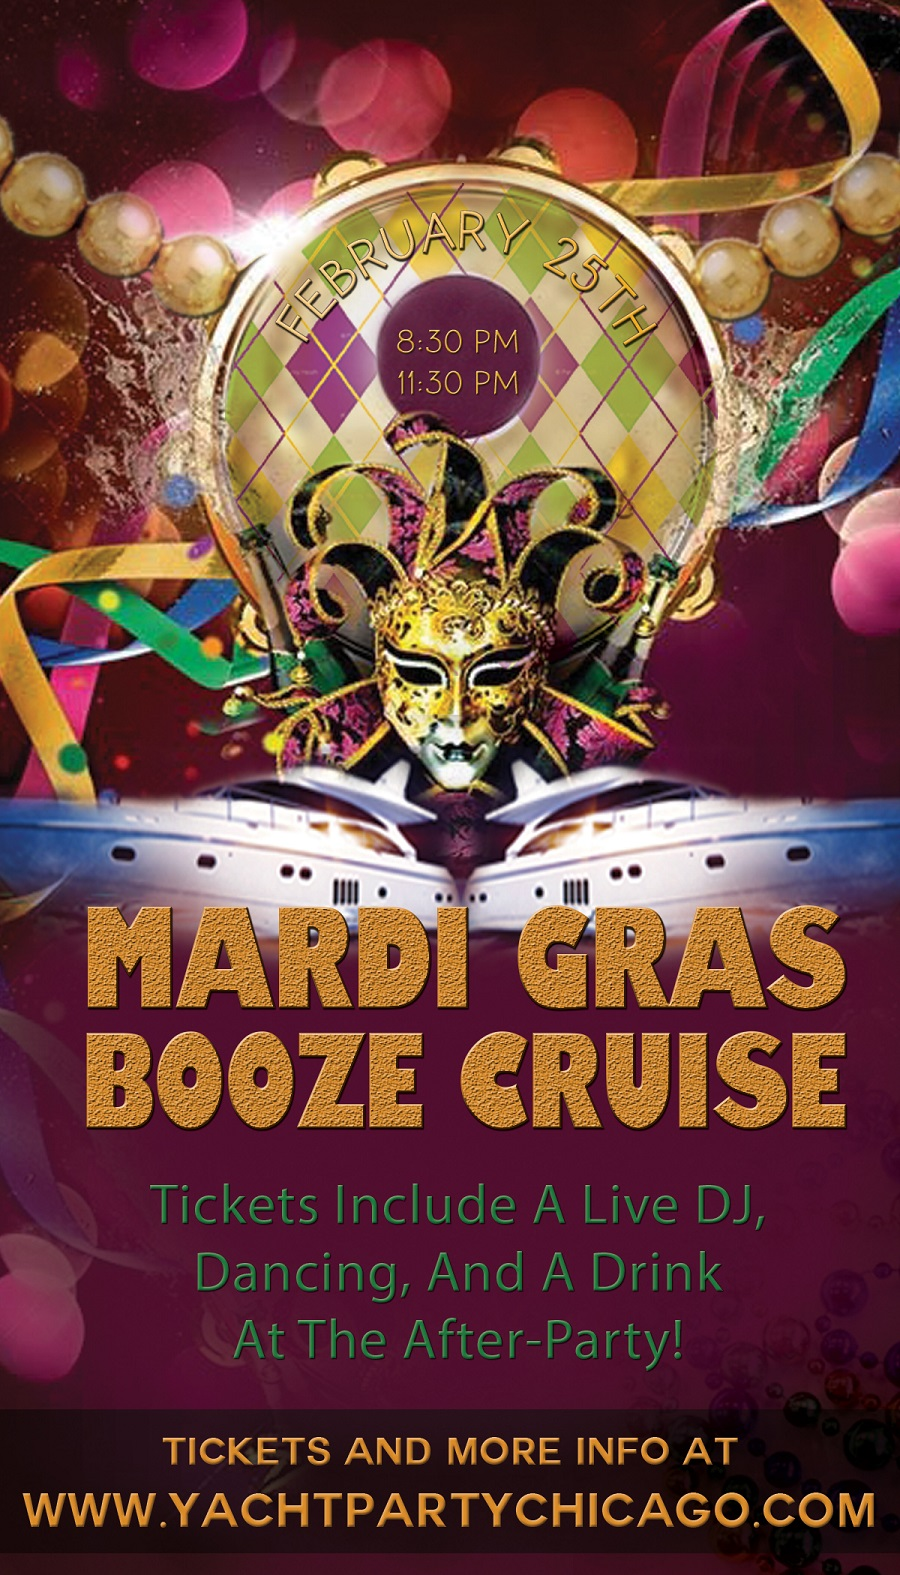 Come out on our yacht for the Mardi Gras Booze Cruise on Lake Michigan! Tickets include a Live DJ, Dancing, and A Drink At The After-Party! Catch breathtaking views of the skyline while aboard the booze cruise!